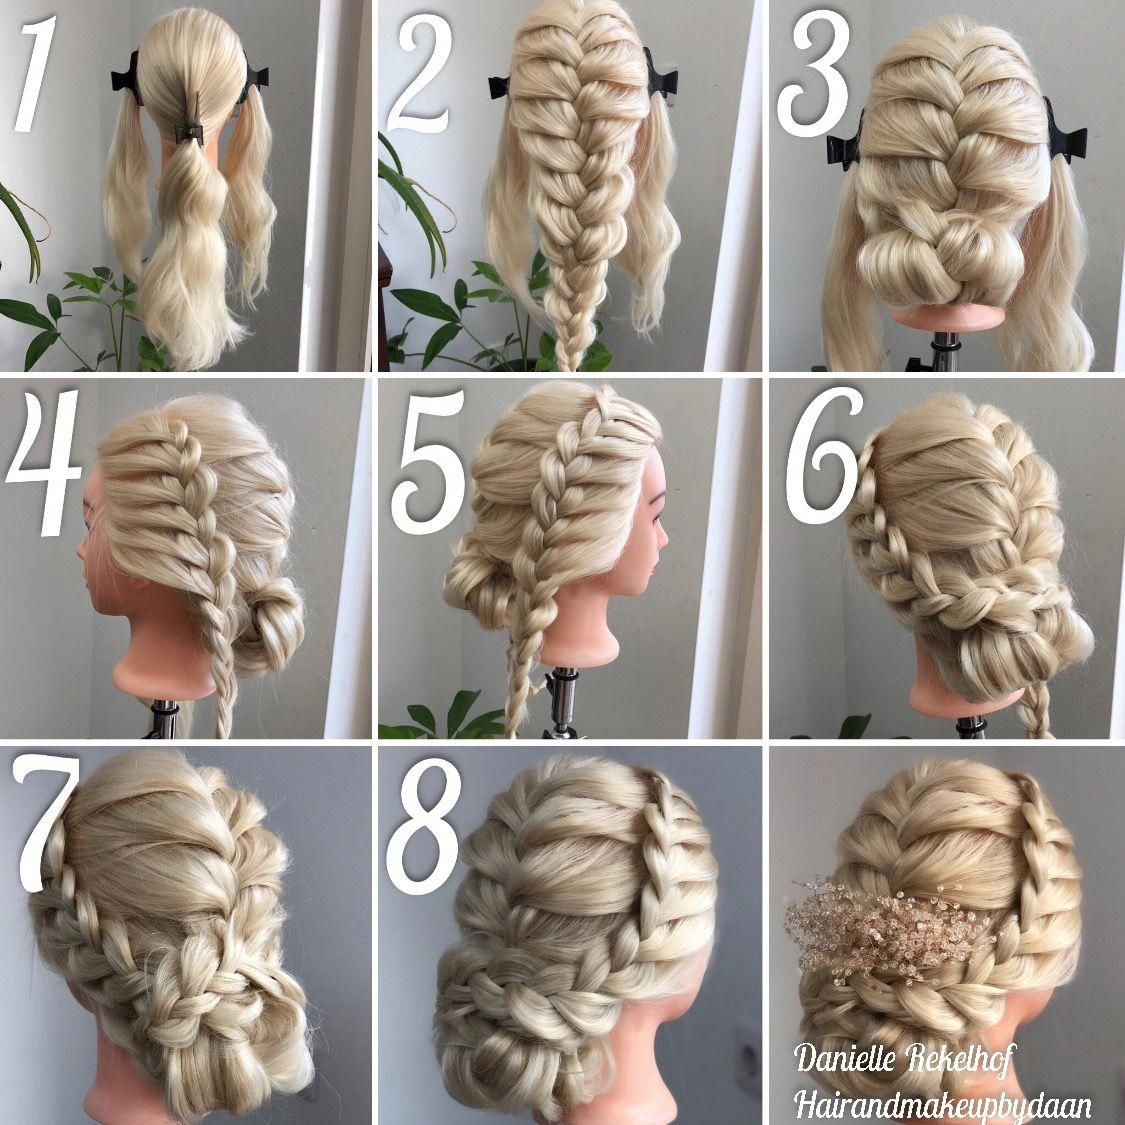 Step By Step Braided Updo Easybraidsformediumhair Prom Hairstyles Updos Hair Updos Tutorials Braids Step By Step